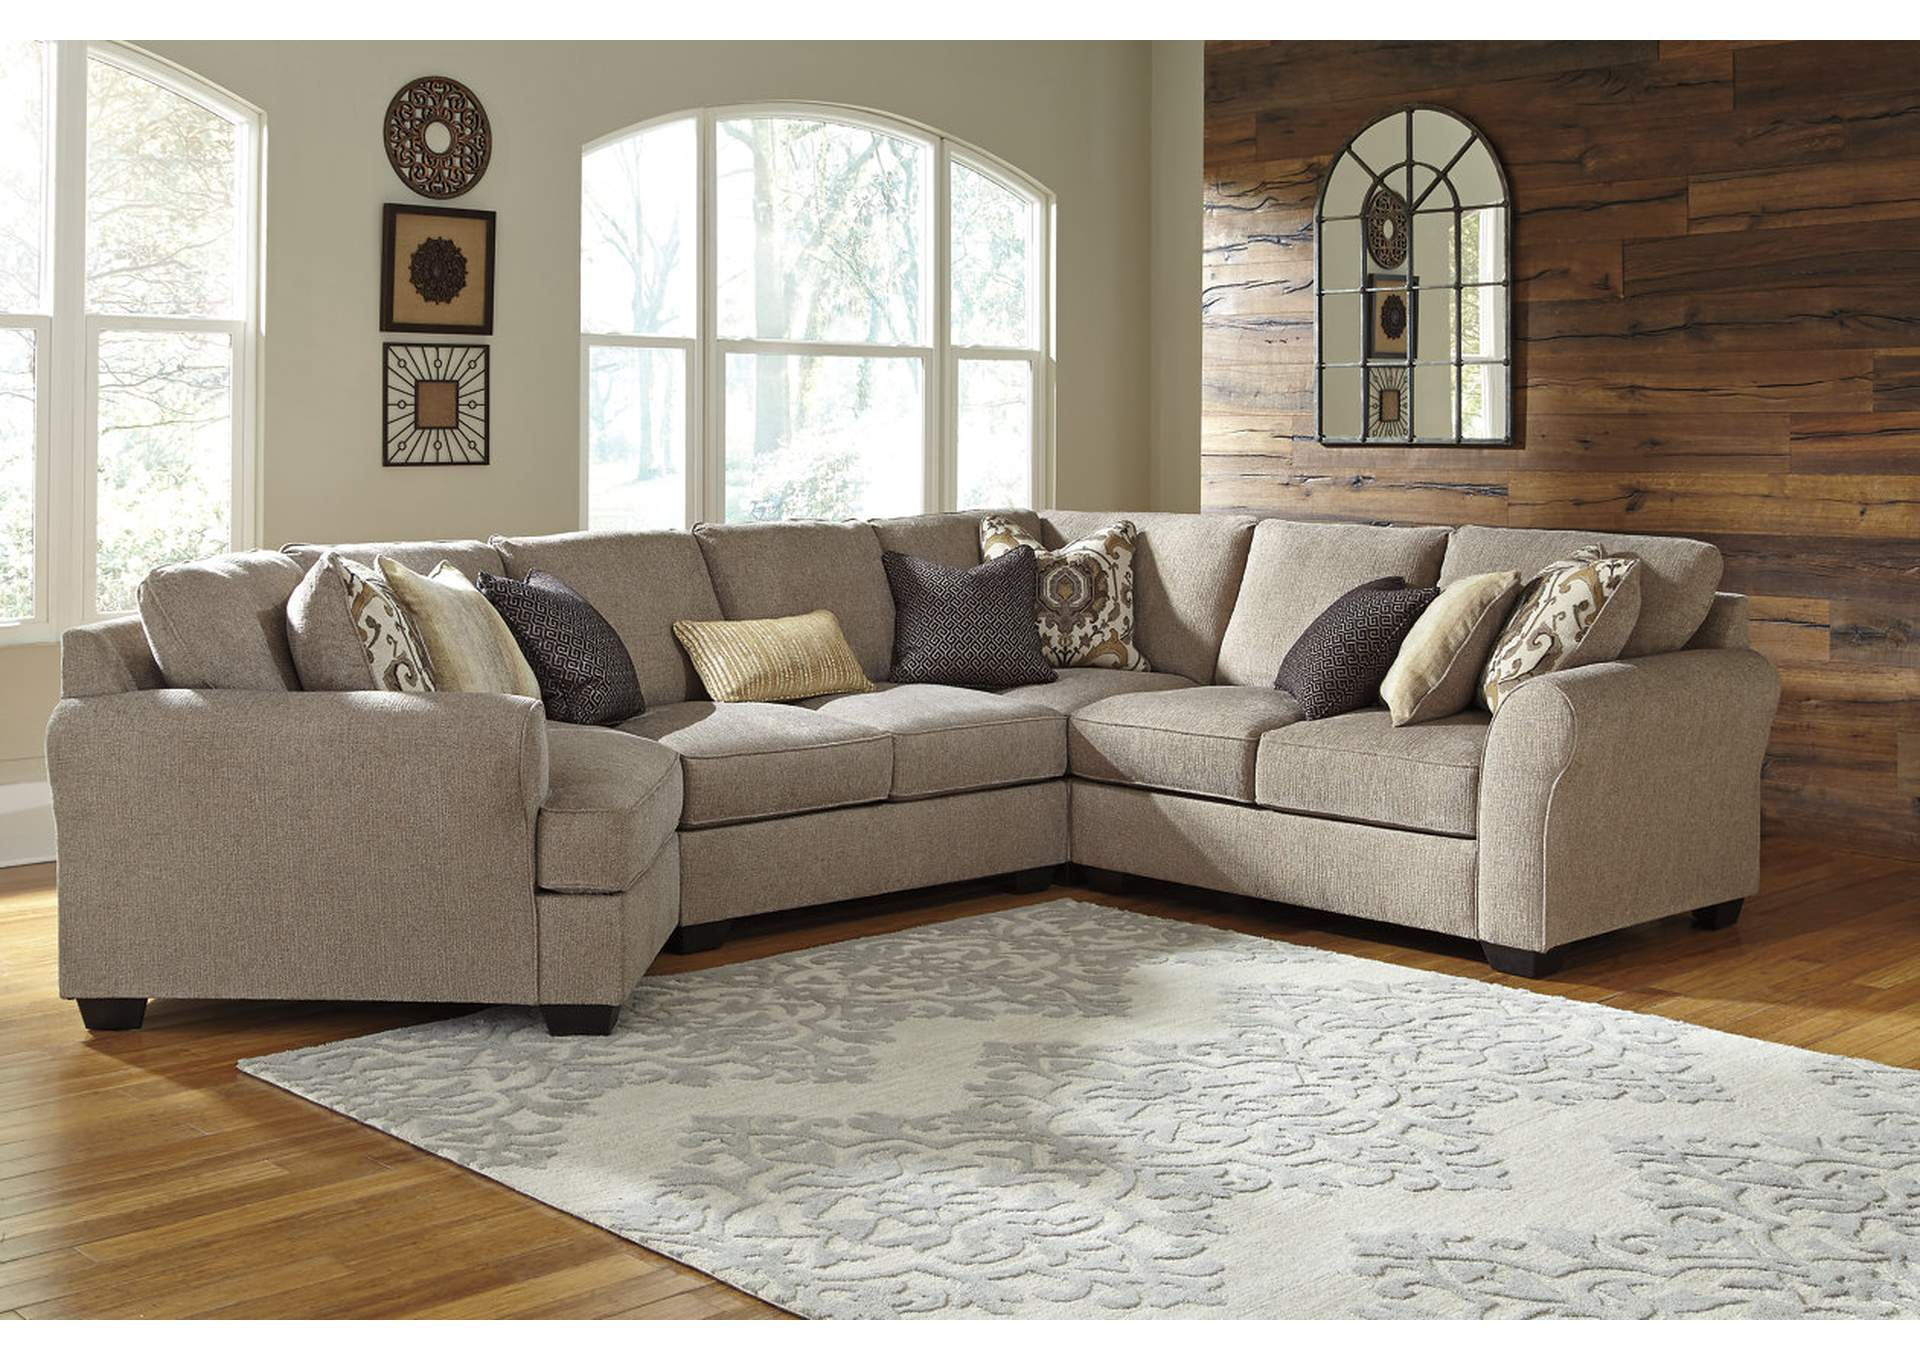 Pantomine Driftwood Sectional w/Left Facing Cuddler ,ABF Benchcraft